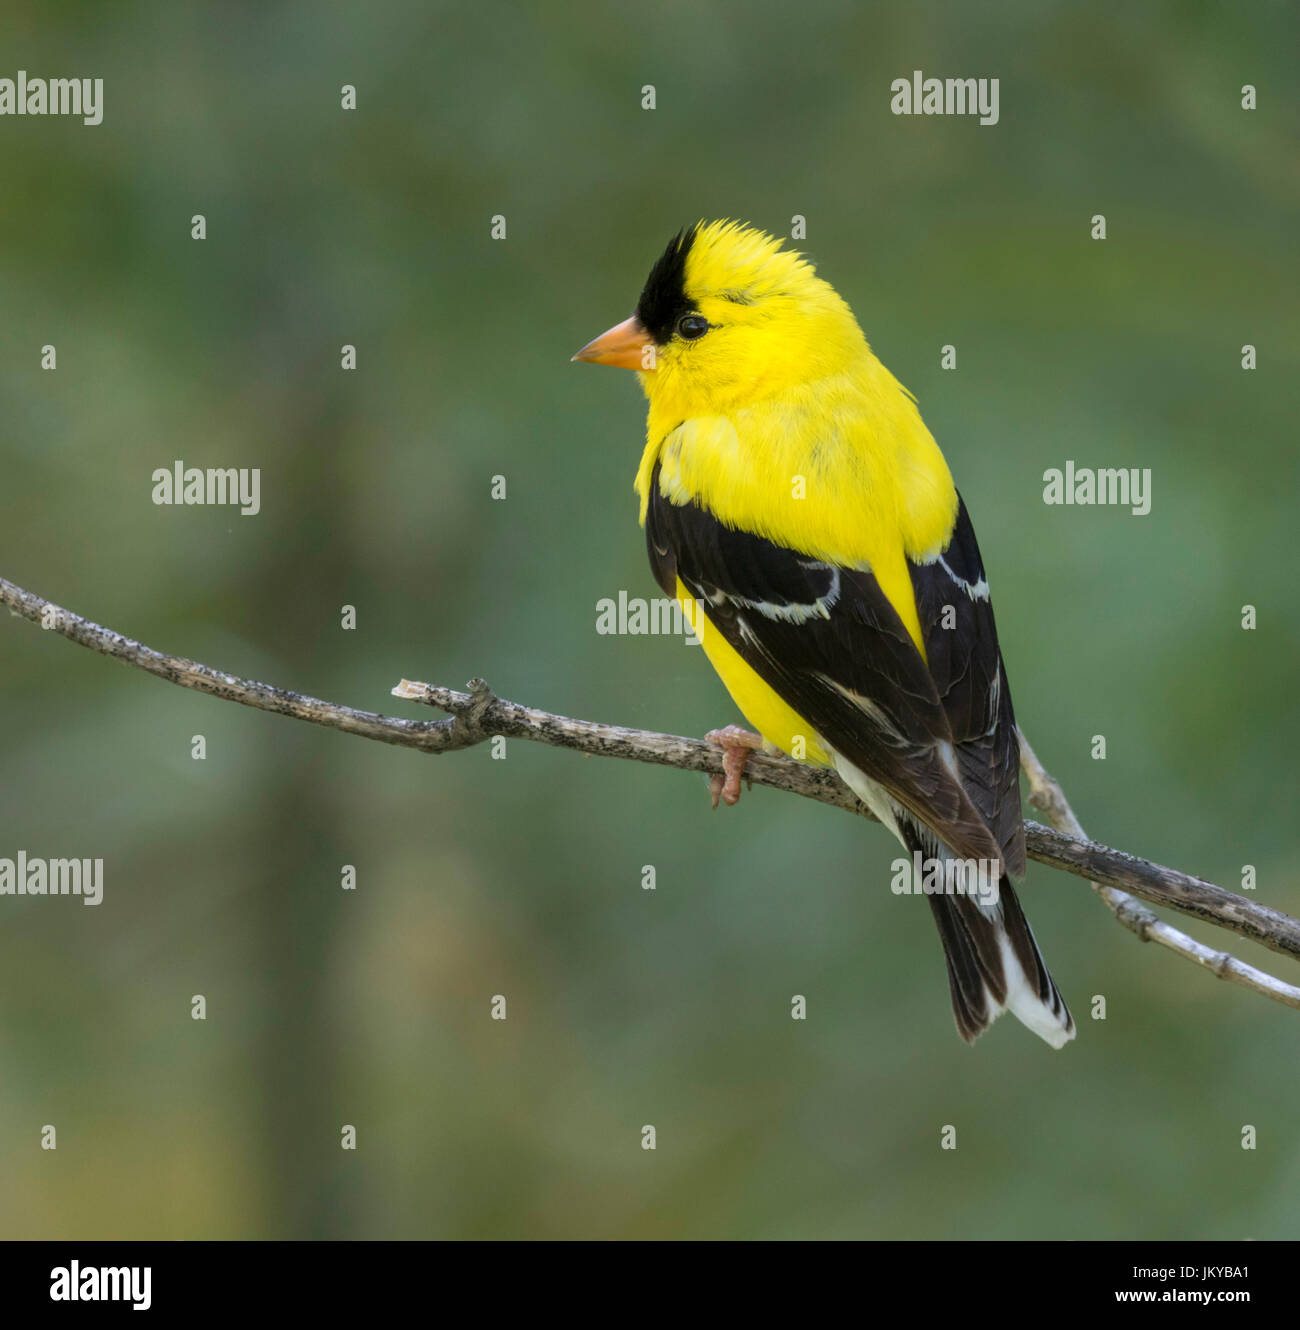 American goldfinch (Carduelis tristis) on a branch, Ames, Iowa, USA - Stock Image